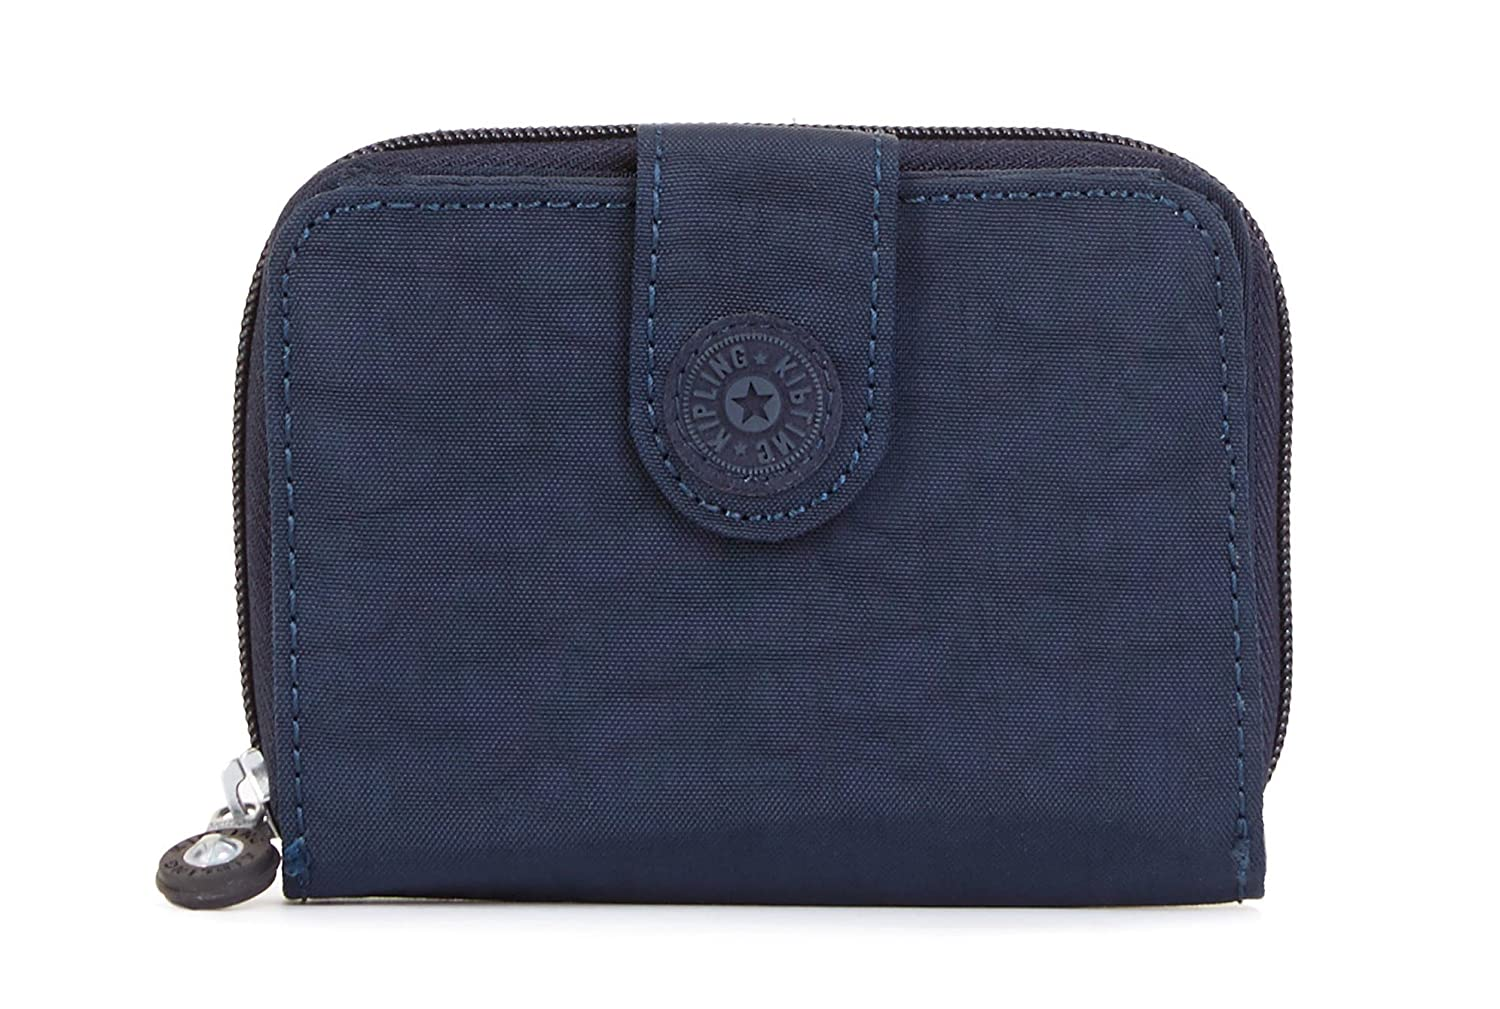 9e23a2a556 Amazon.com: Kipling New Money Deluxe Wallet, Black, One Size: Clothing